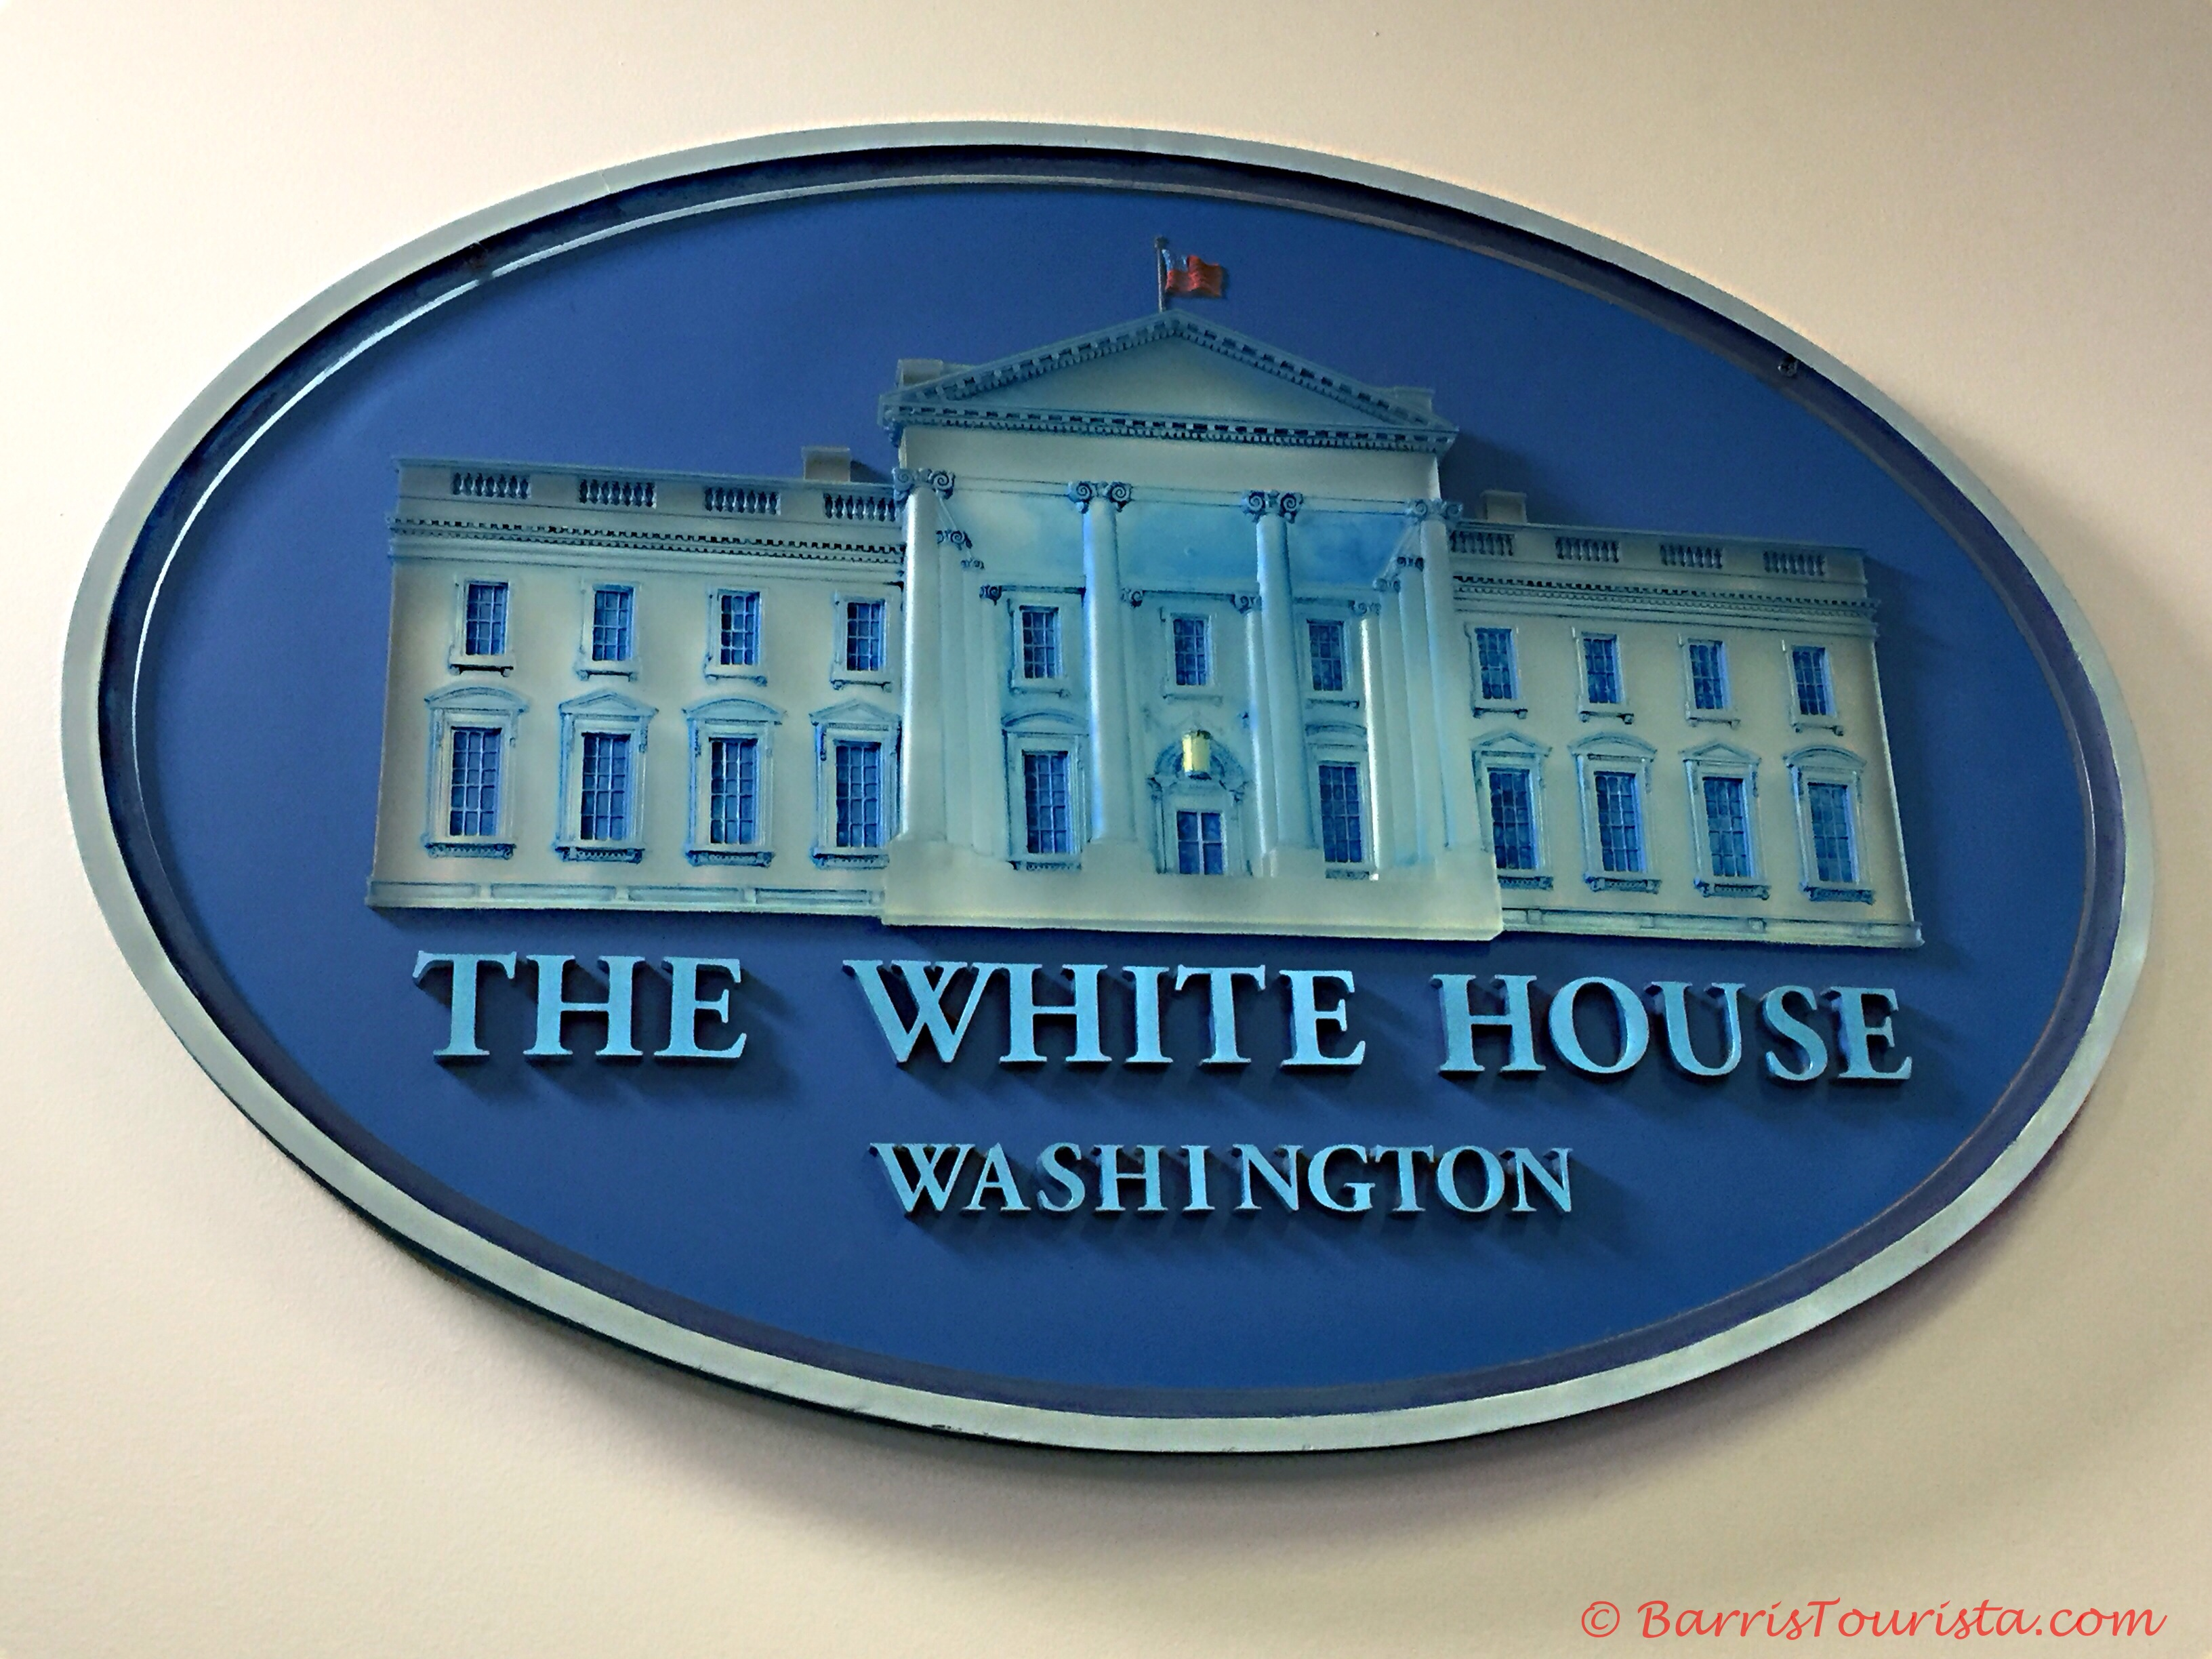 BarrisTourista-White House-Press Room Seal